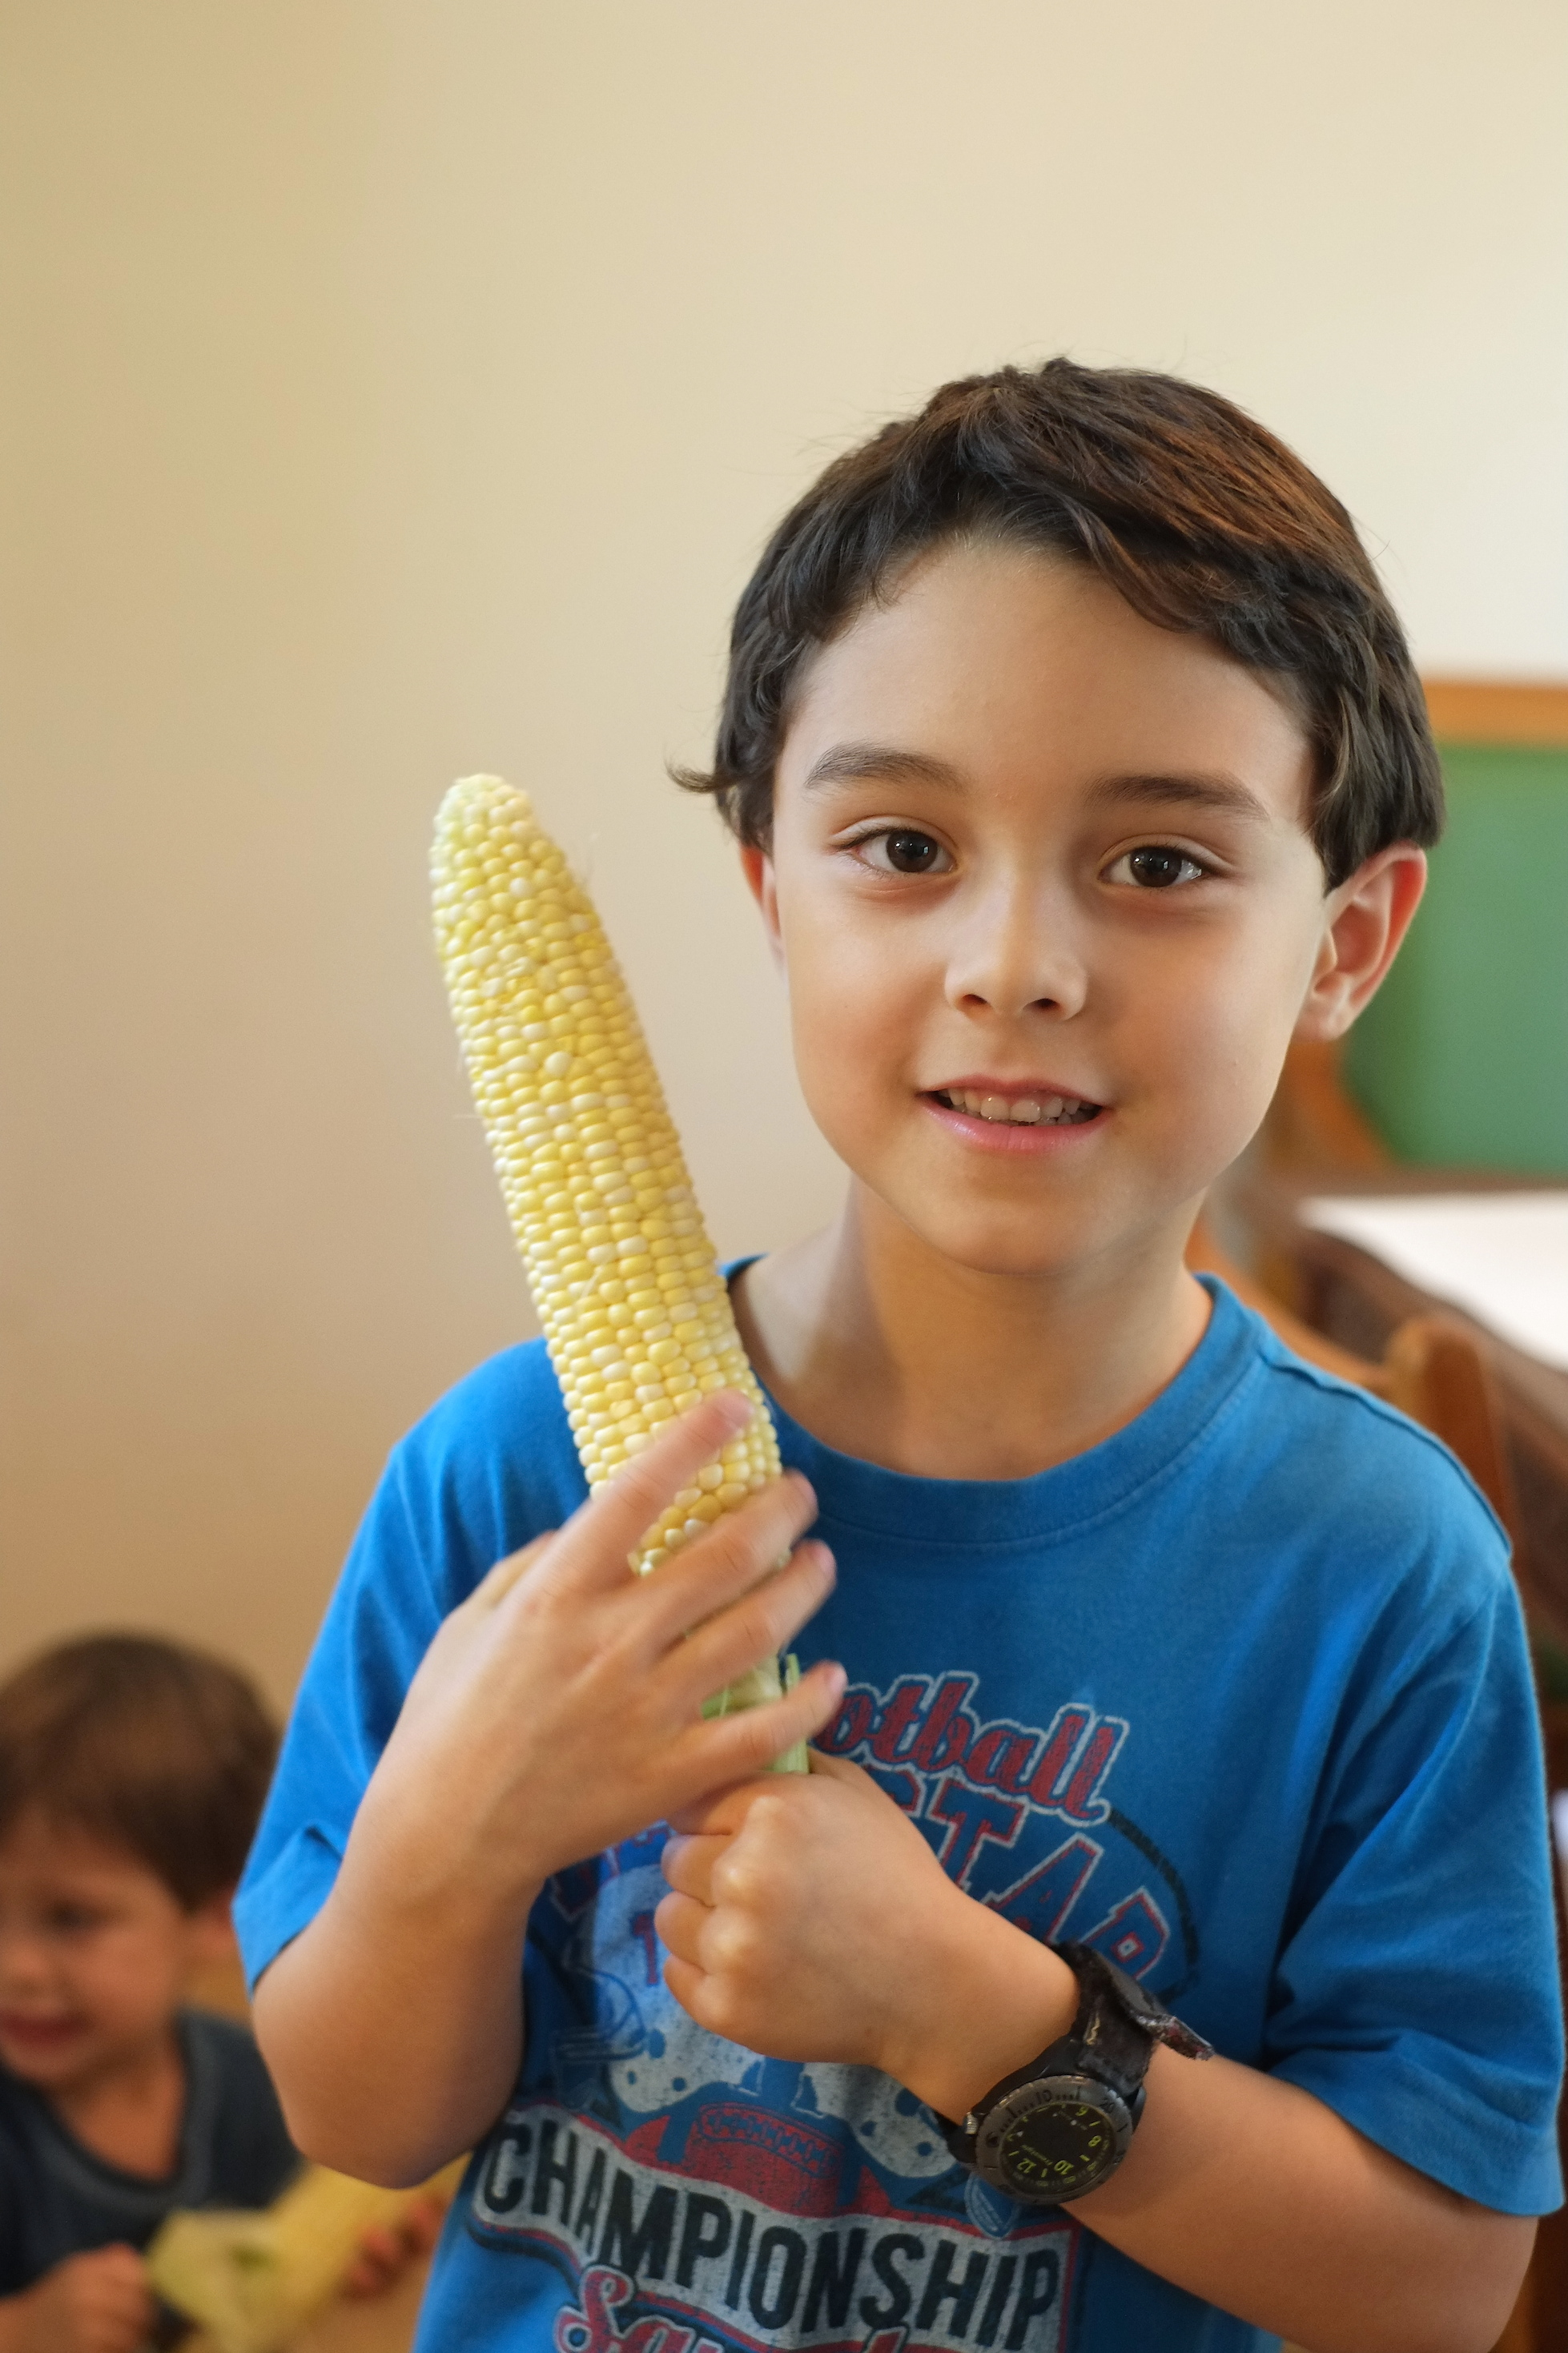 Abraham holding organic corn he was helping the family shuck